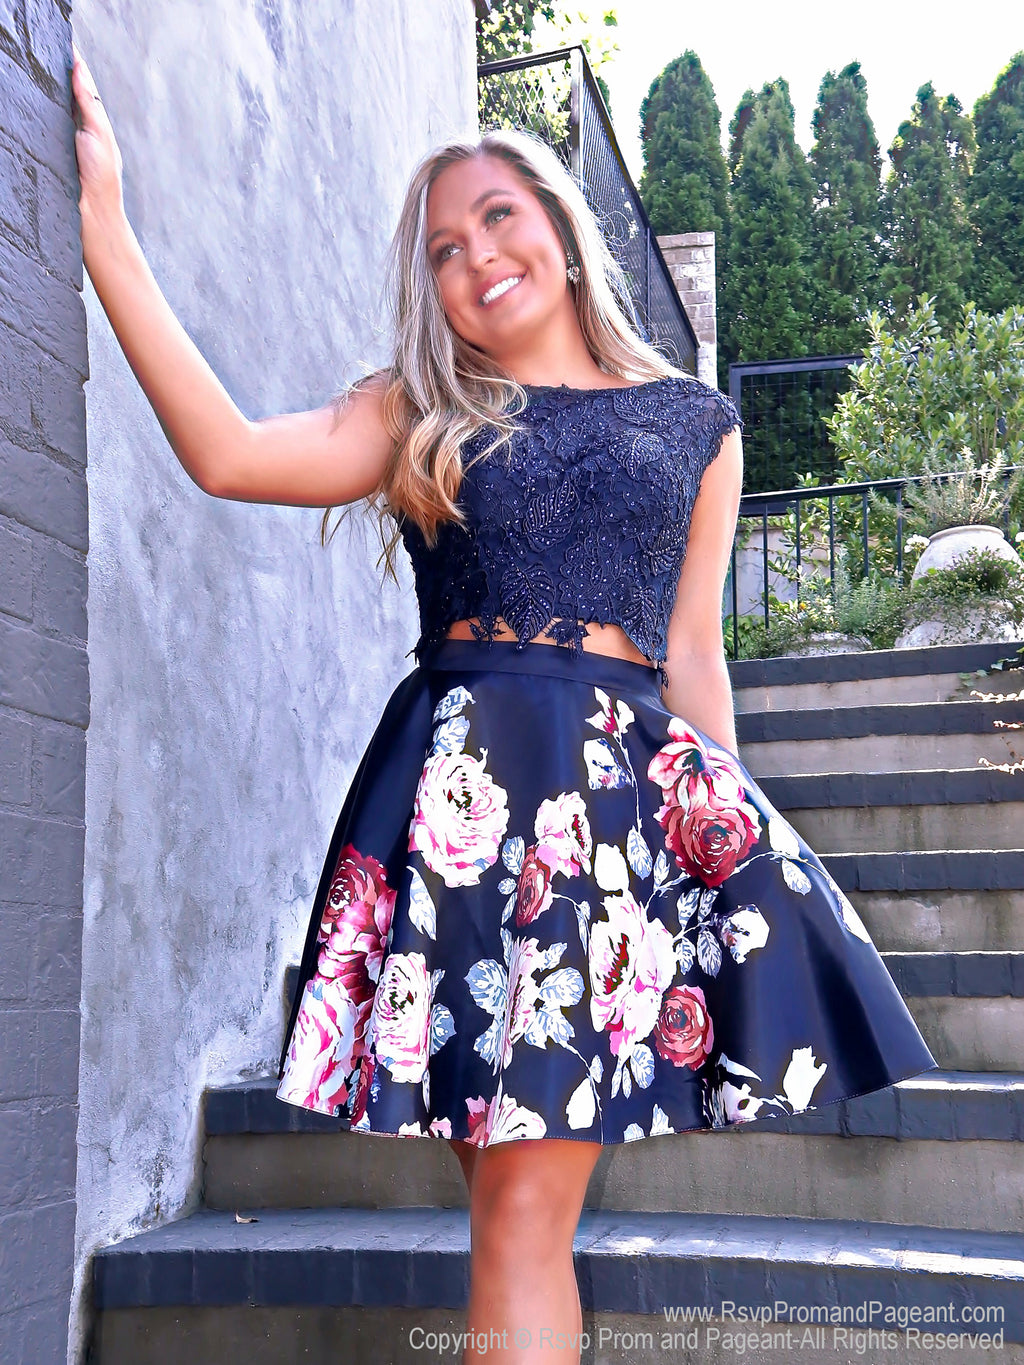 Model in Adorable Two Piece with Lace Top and Floral Skirt with Pockets Short Homecoming Dress at RsvpProm and Pageant, best prom dress store located in Atlanta, Georgia